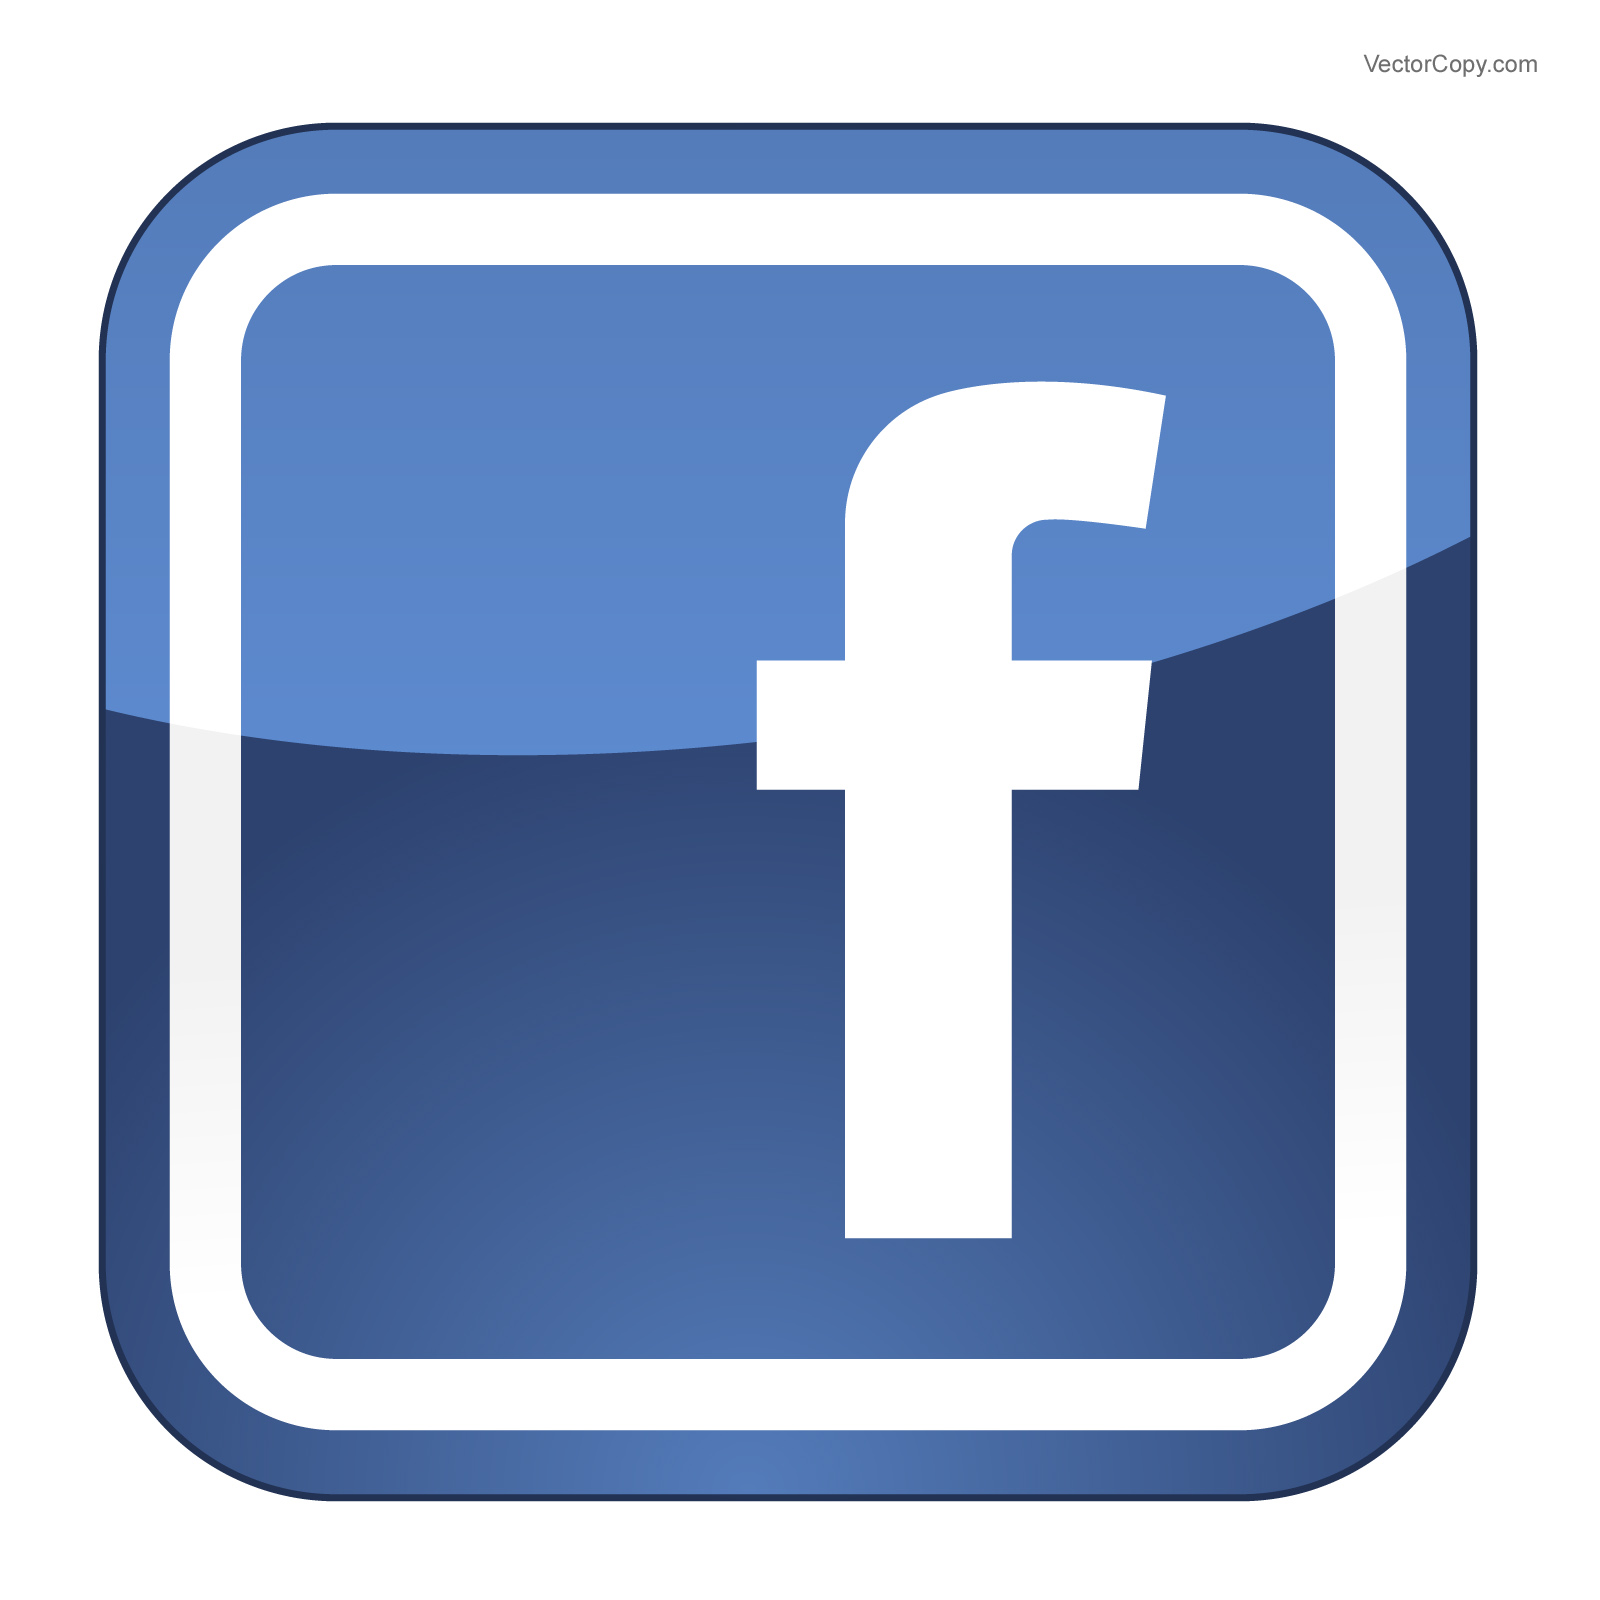 9 Free Facebook Icon Vector Logo Images